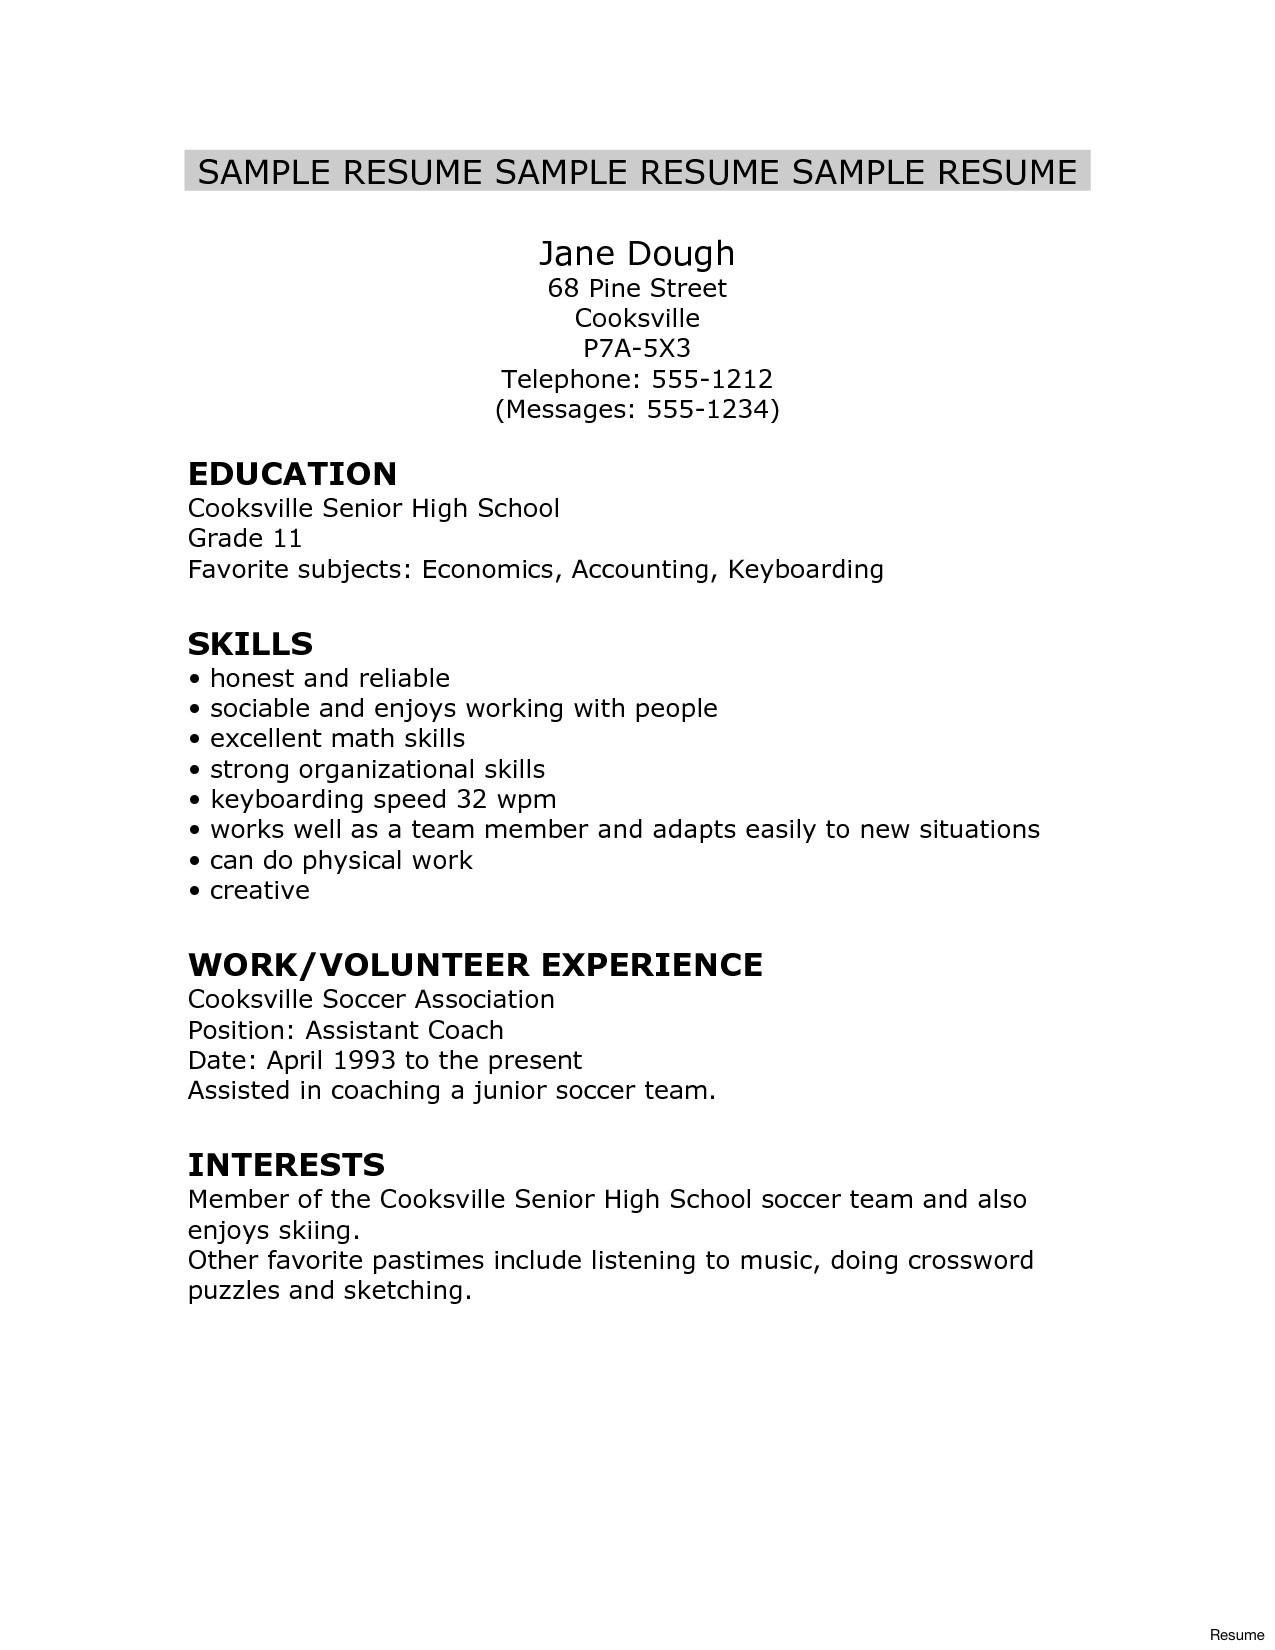 High School Resume Template Pdf - Sample Resume for High School Graduate with No Experience Sample Pdf